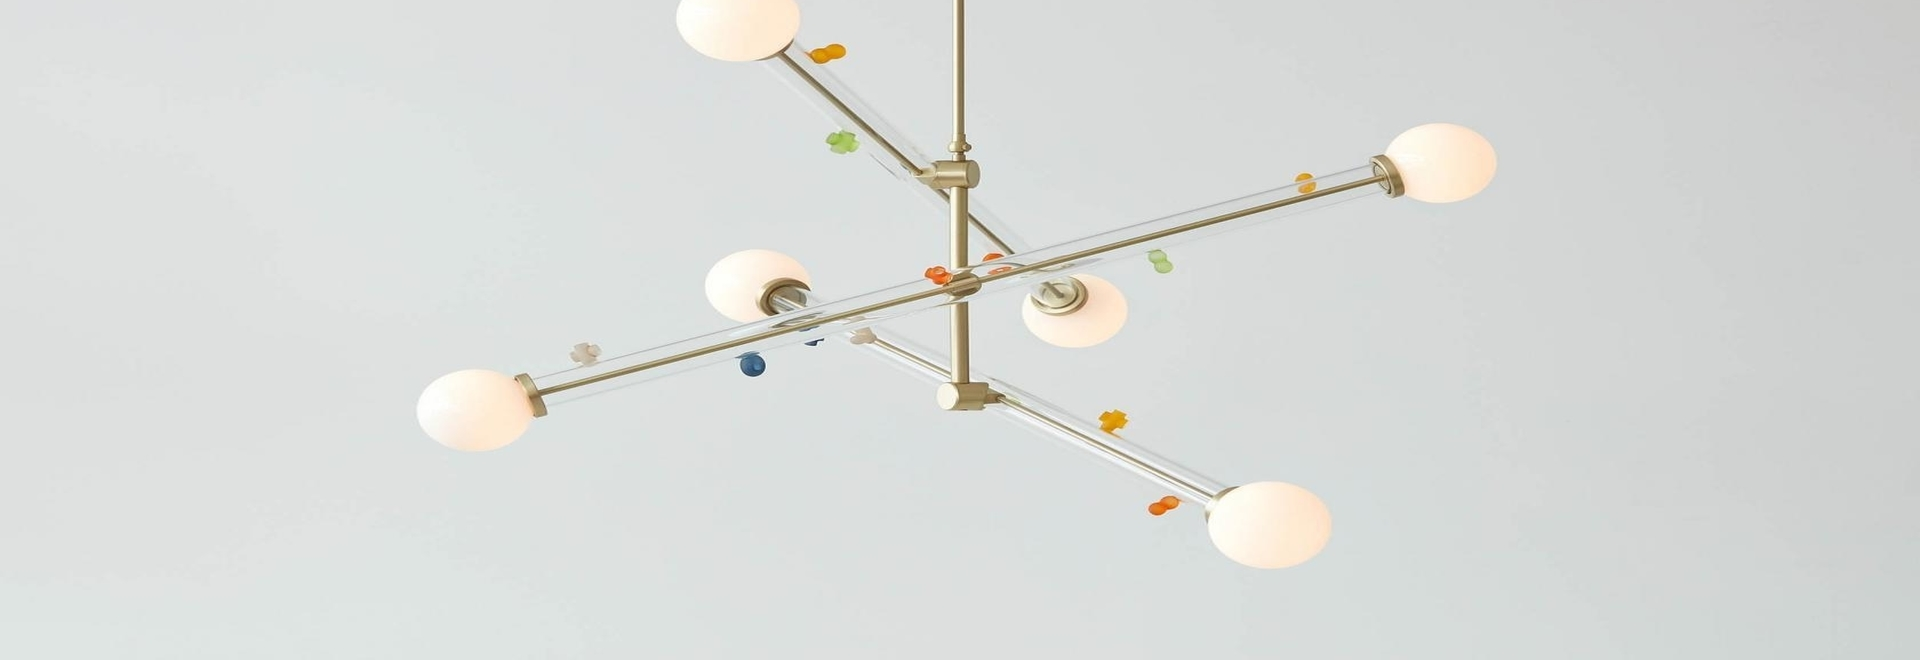 Howdy, Neighbor is a collaboration between New York's Trueing Studio and Japanese glass artist Baku Takahashi. The 'Little World' chandelier, pictured, is 'a reference to the impetus for Takahashi'...